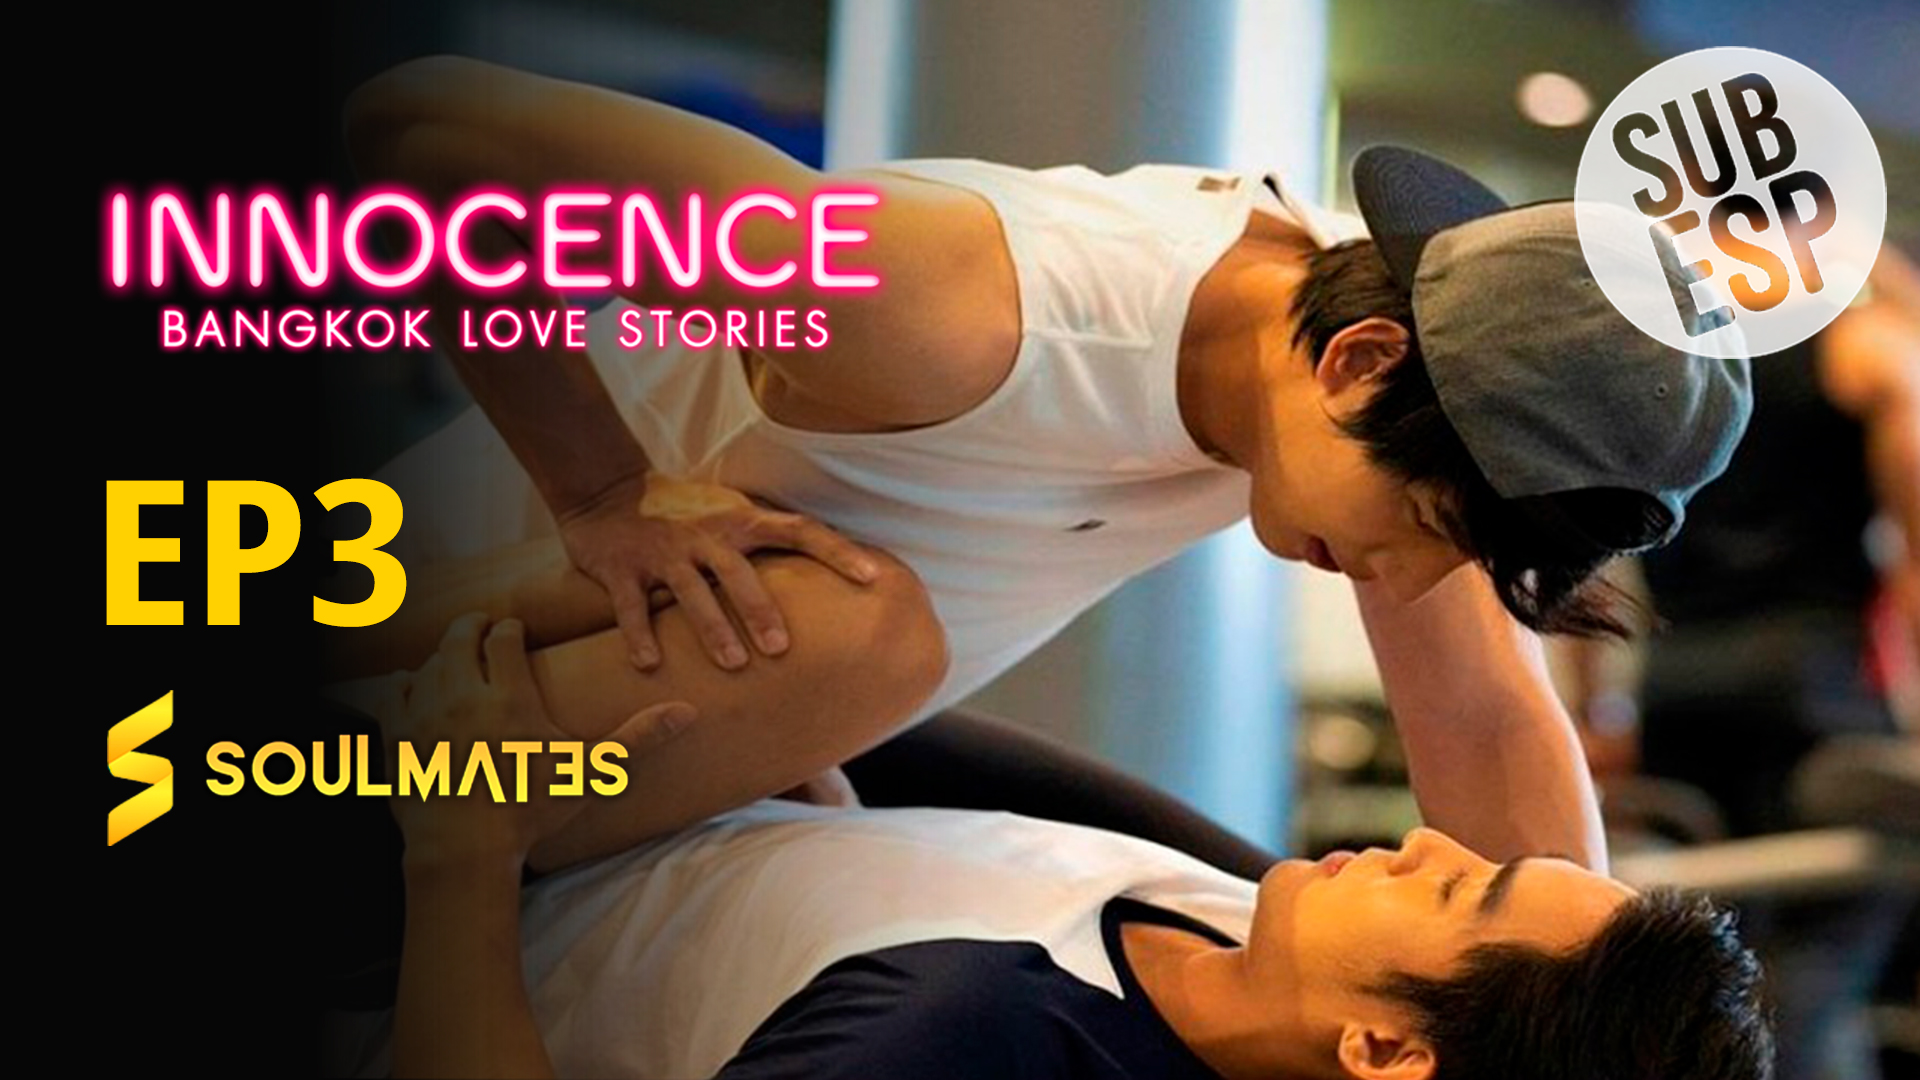 Bangkok Love Stories 2 Innocence : 1×3